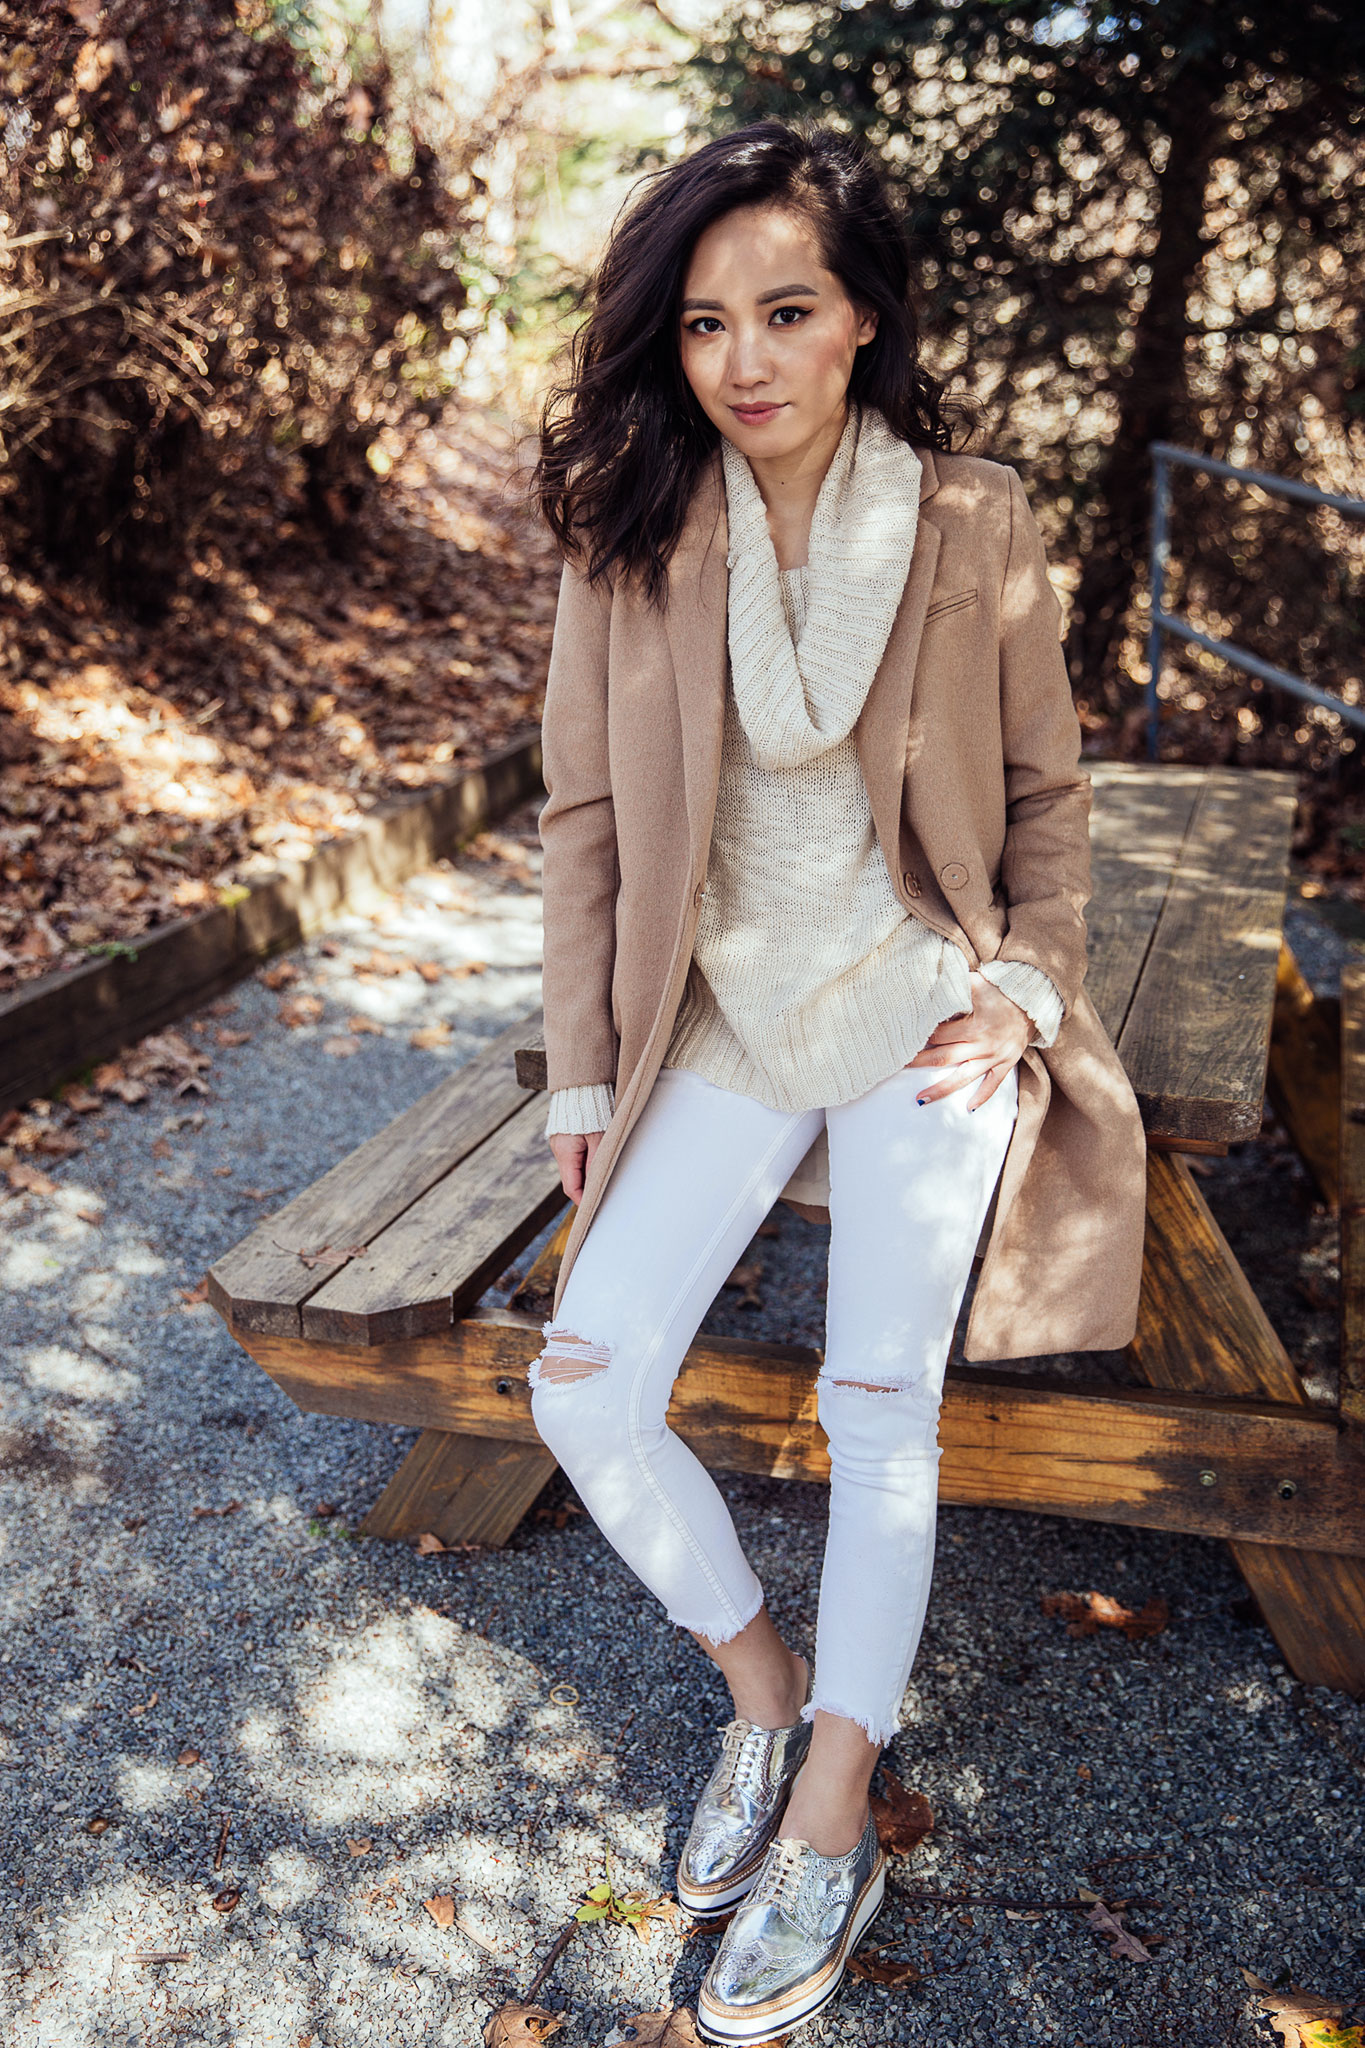 Fall Outfit - Camel Coat with Cowl Neck Sweater and White Jeans   le-jolie.com